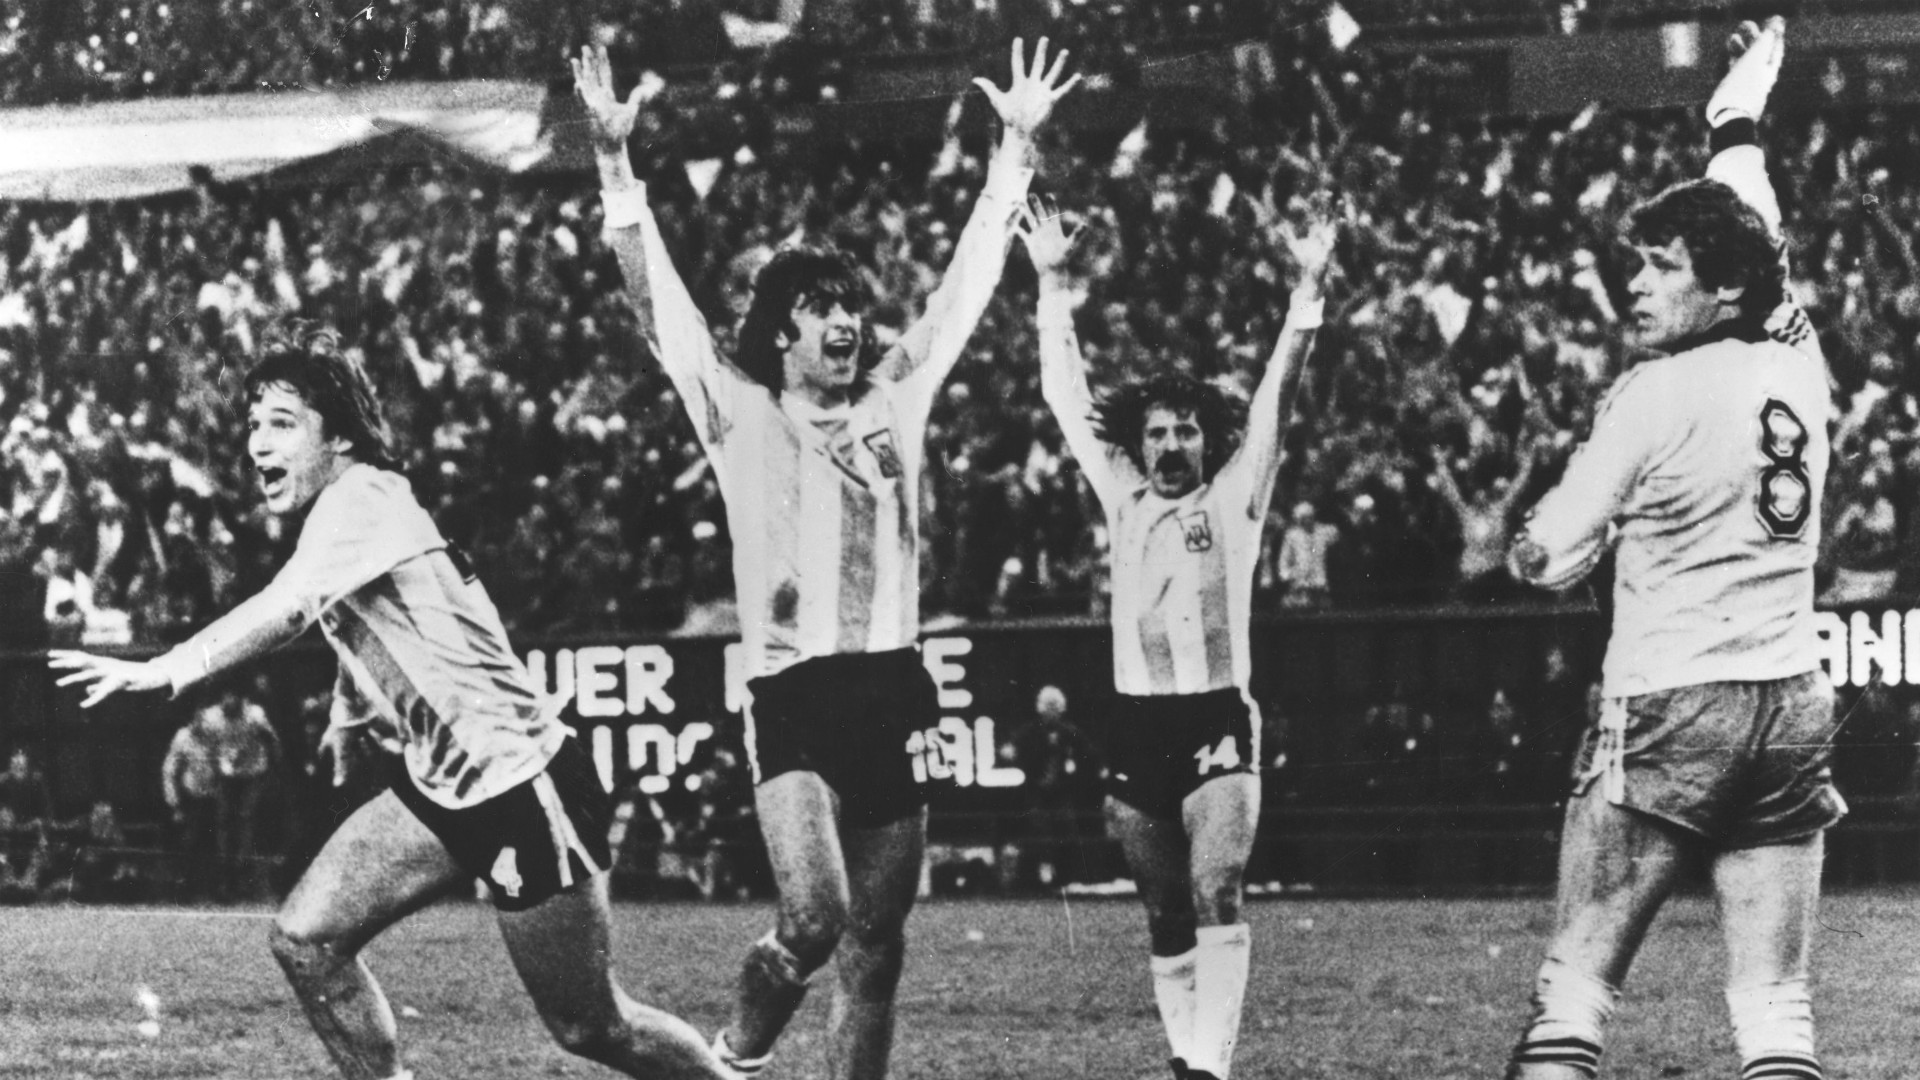 Daniel Bertoni Argentina Netherlands World Cup 1978 Final Match